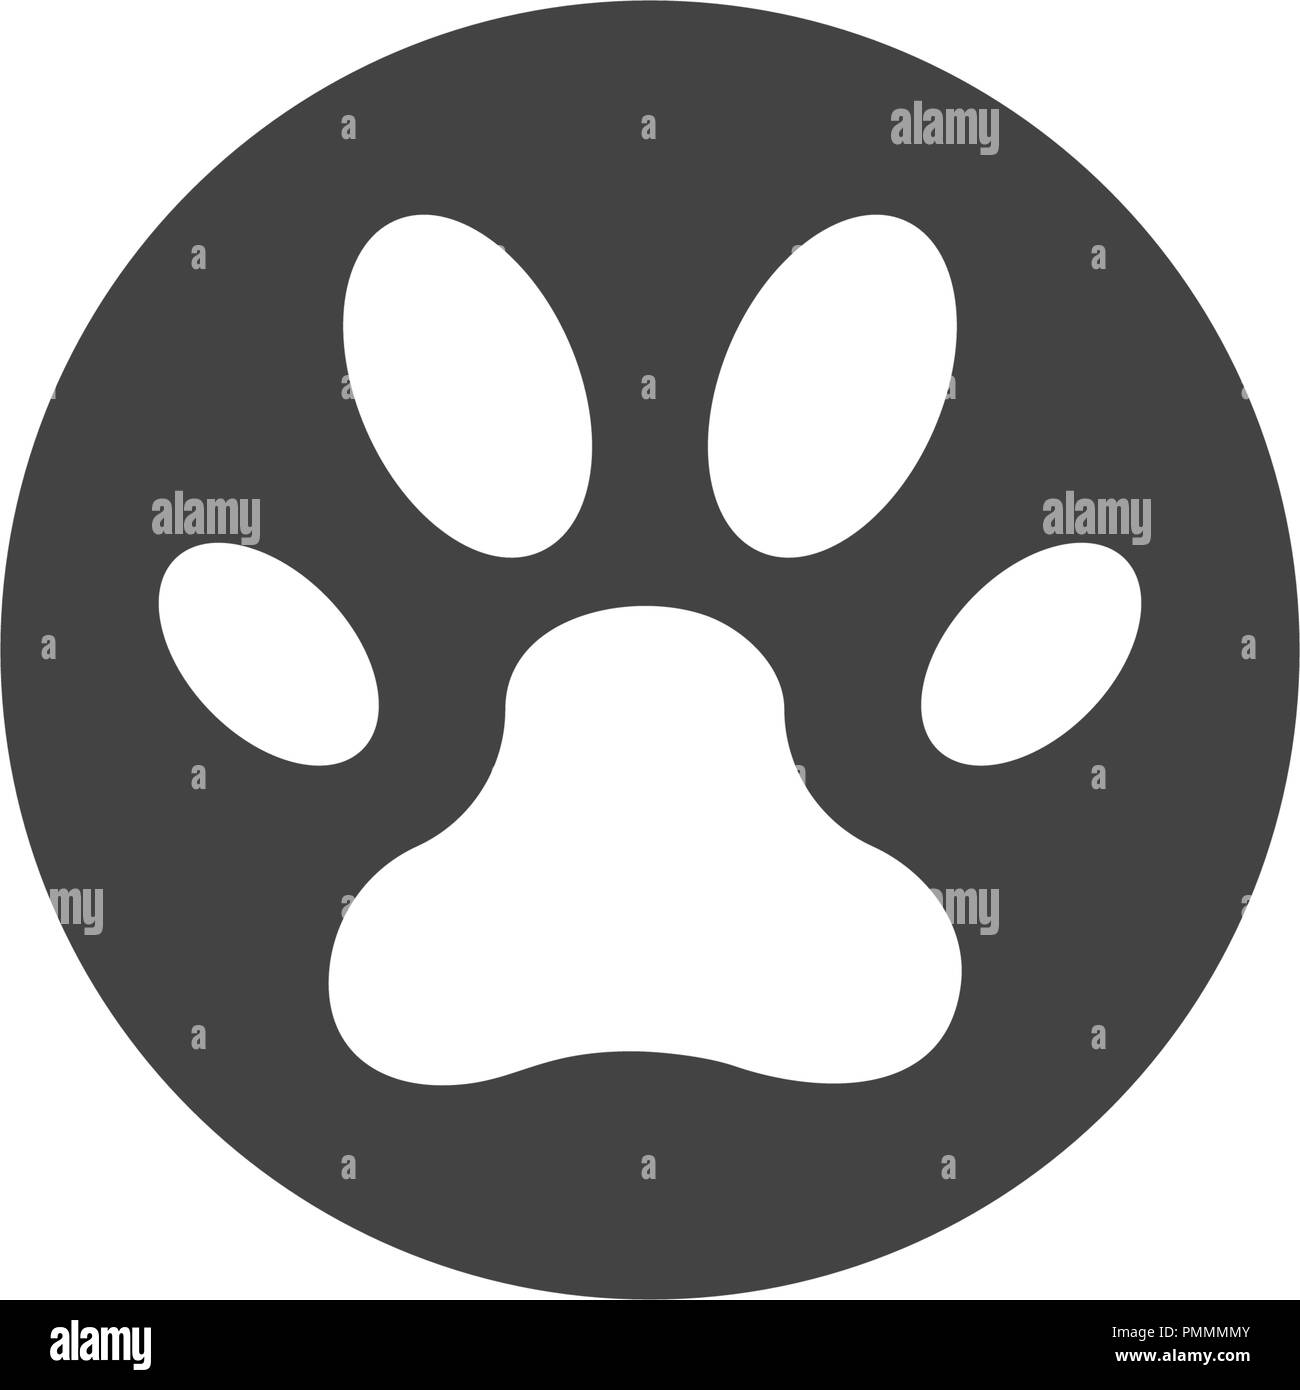 paw icon vector illustration design logo template stock vector art